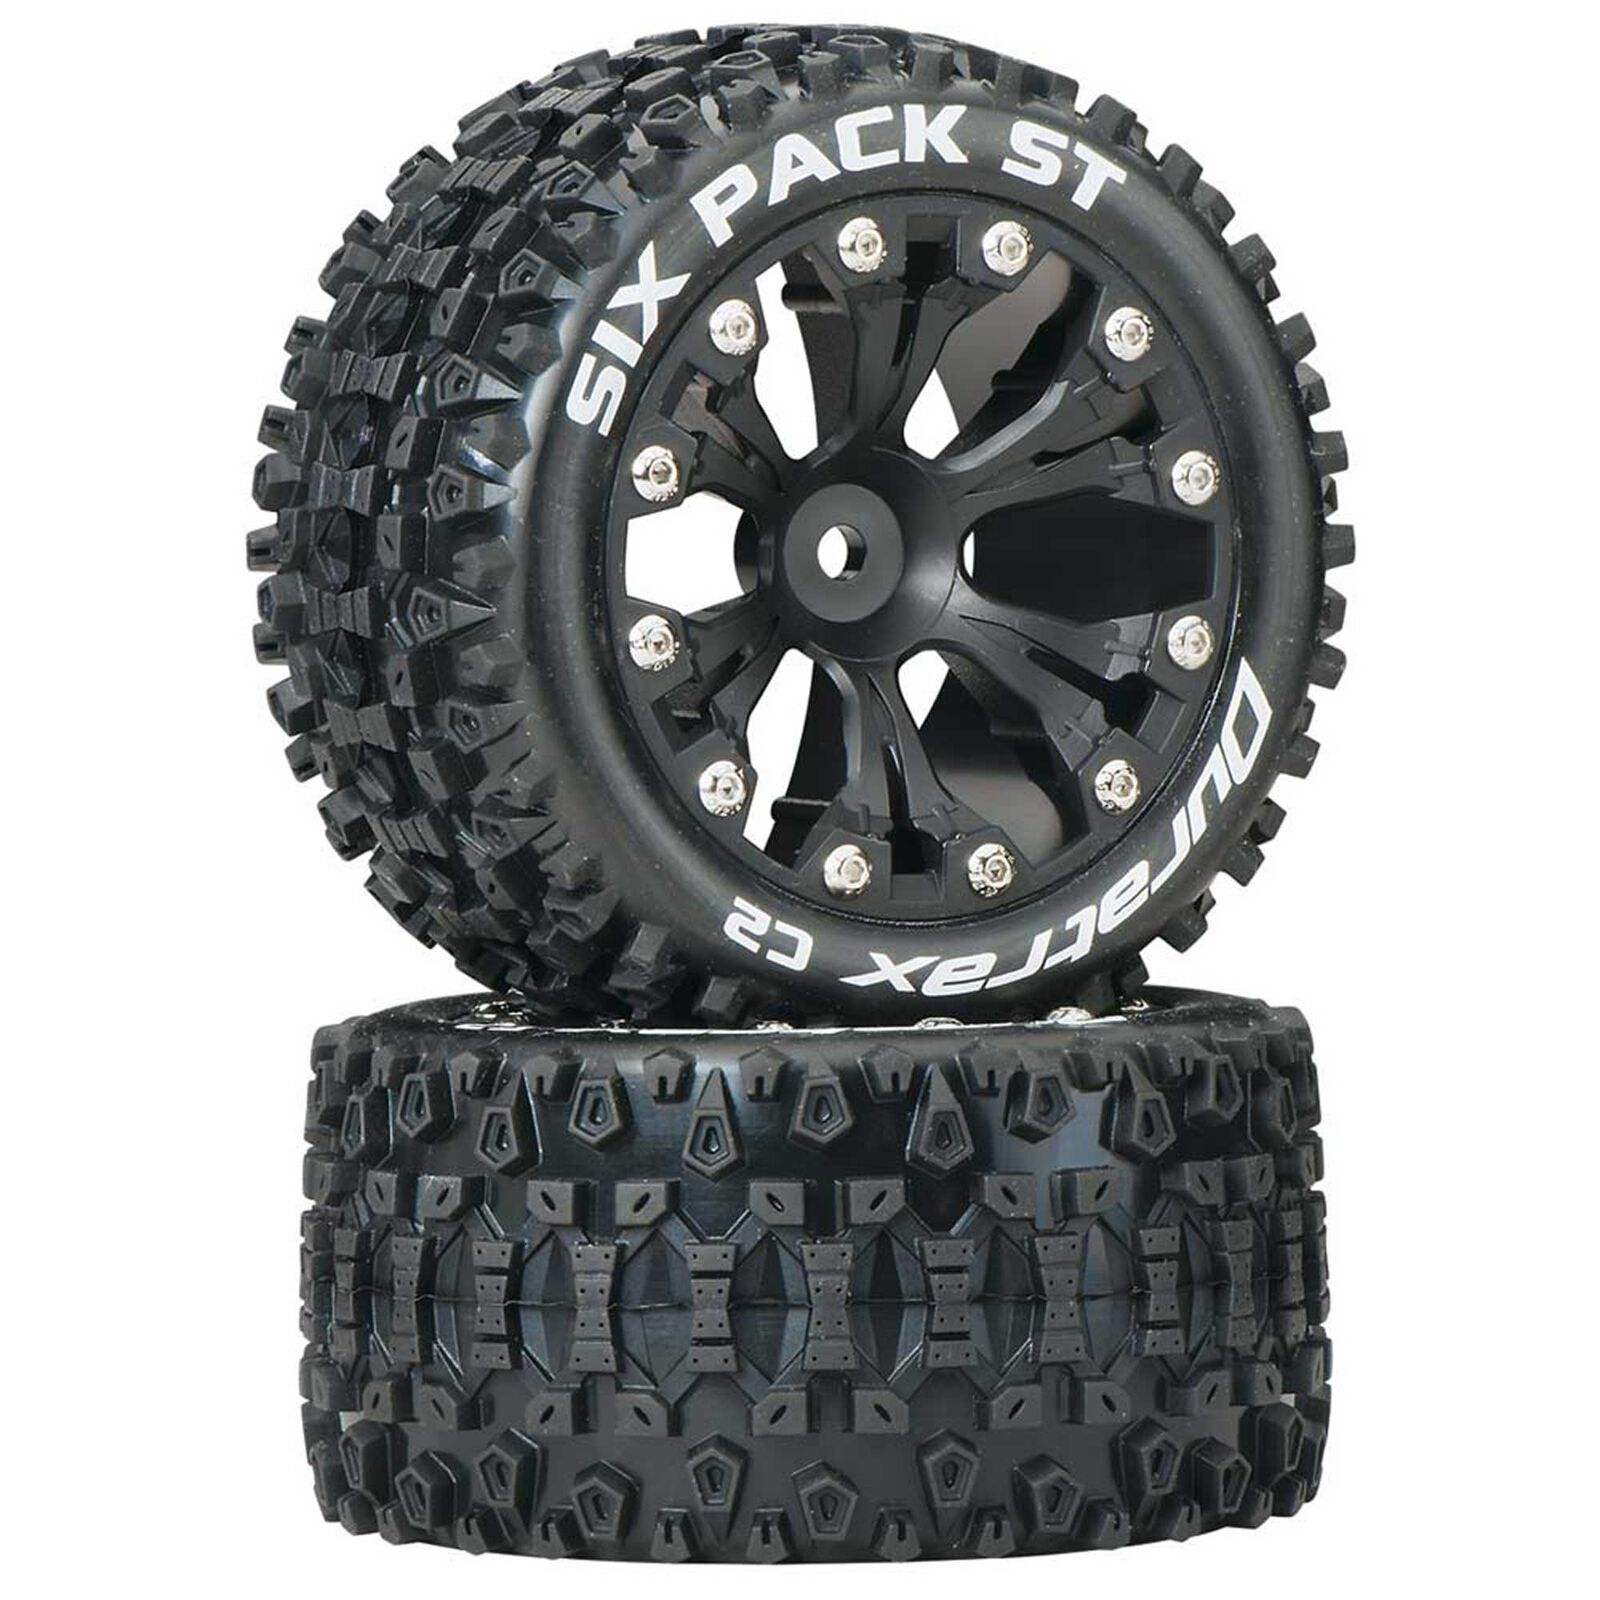 """Six Pack ST 2.8"""" 2WD Mounted Rear C2 Tires, Black (2)"""